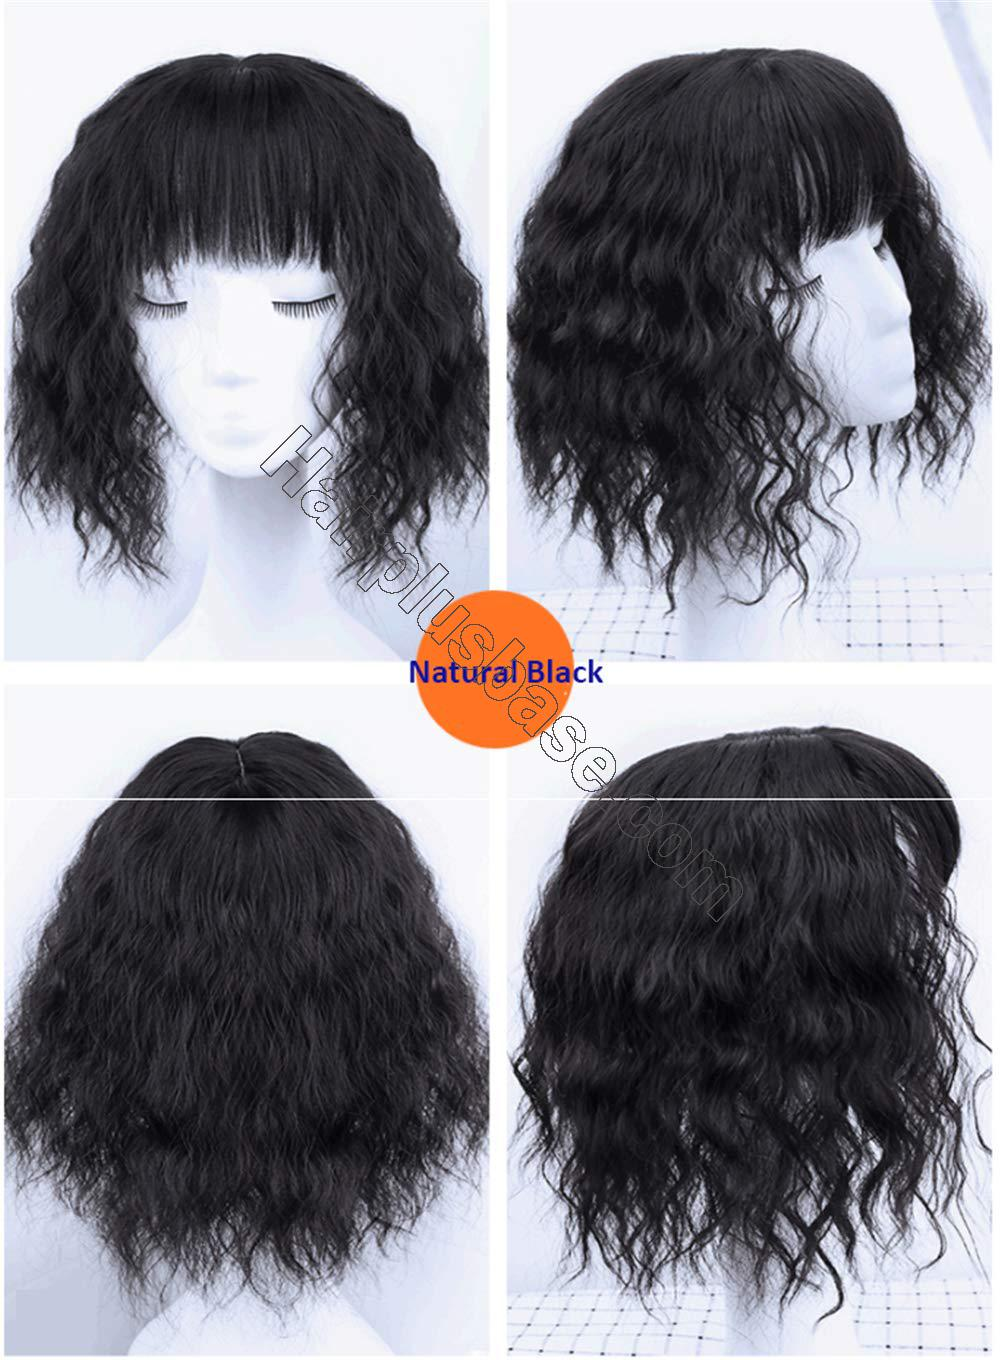 Curly Synthetic Hair Crown Toppers with Bangs for Women with Thinning Hair, 14 Inch Clip in Crown Hair Pieces, Natural Black 2